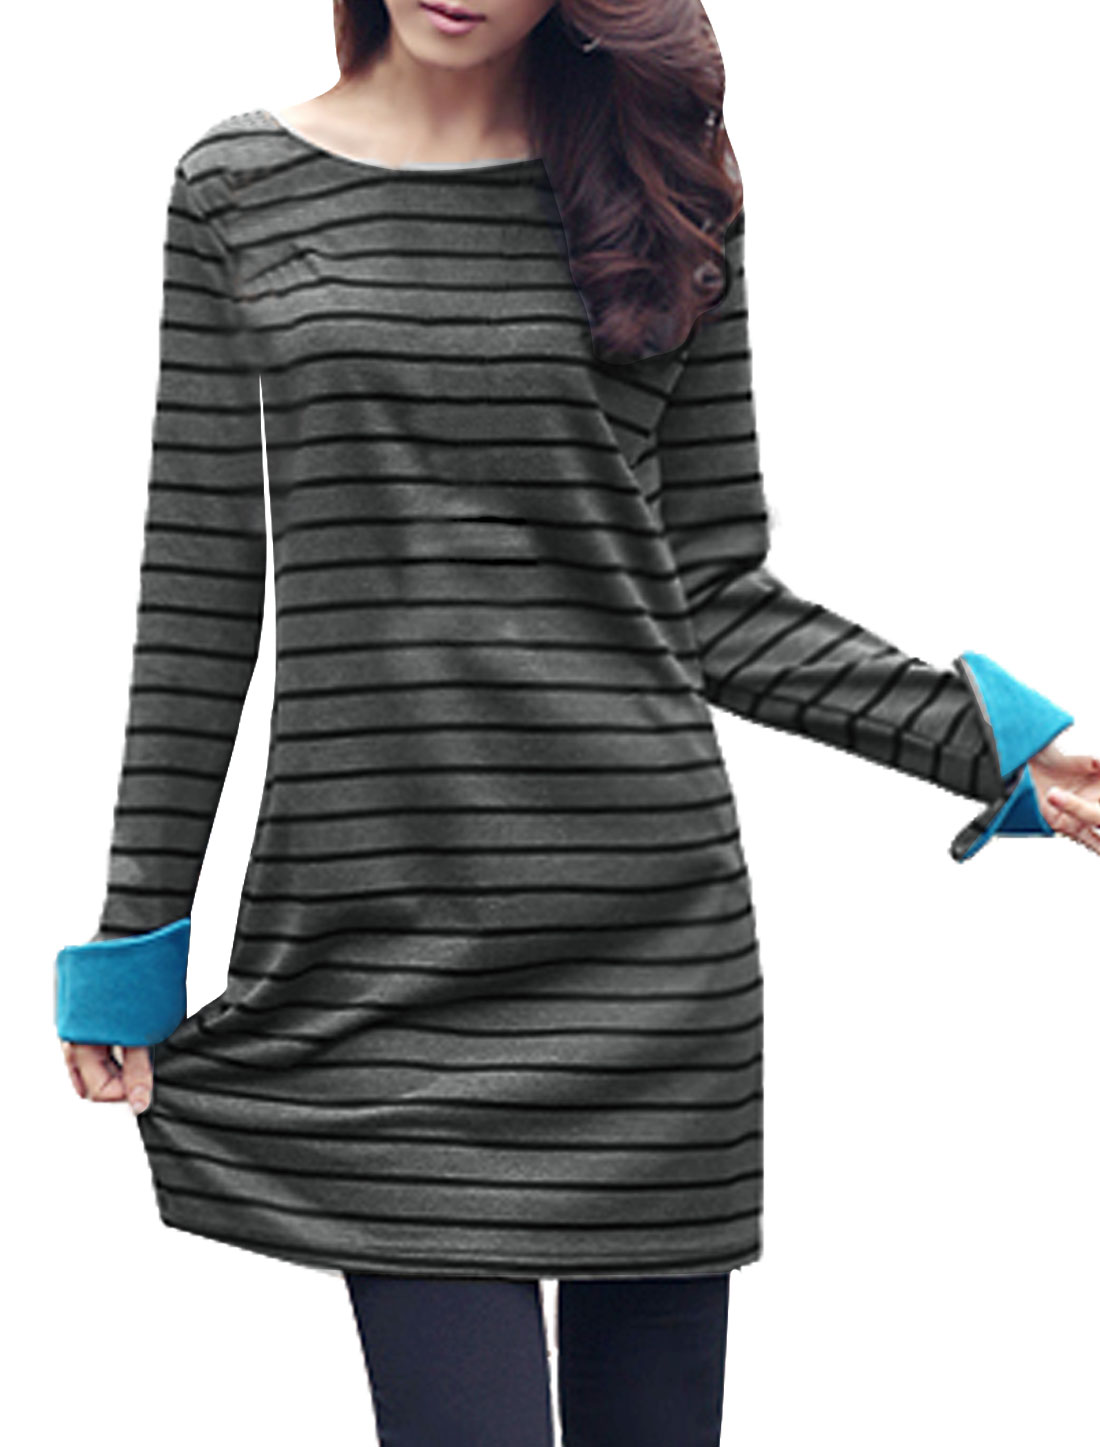 Lady Dark Gray Black Long Sleeve Stripes Stretchy Autumn Mini Dress XS